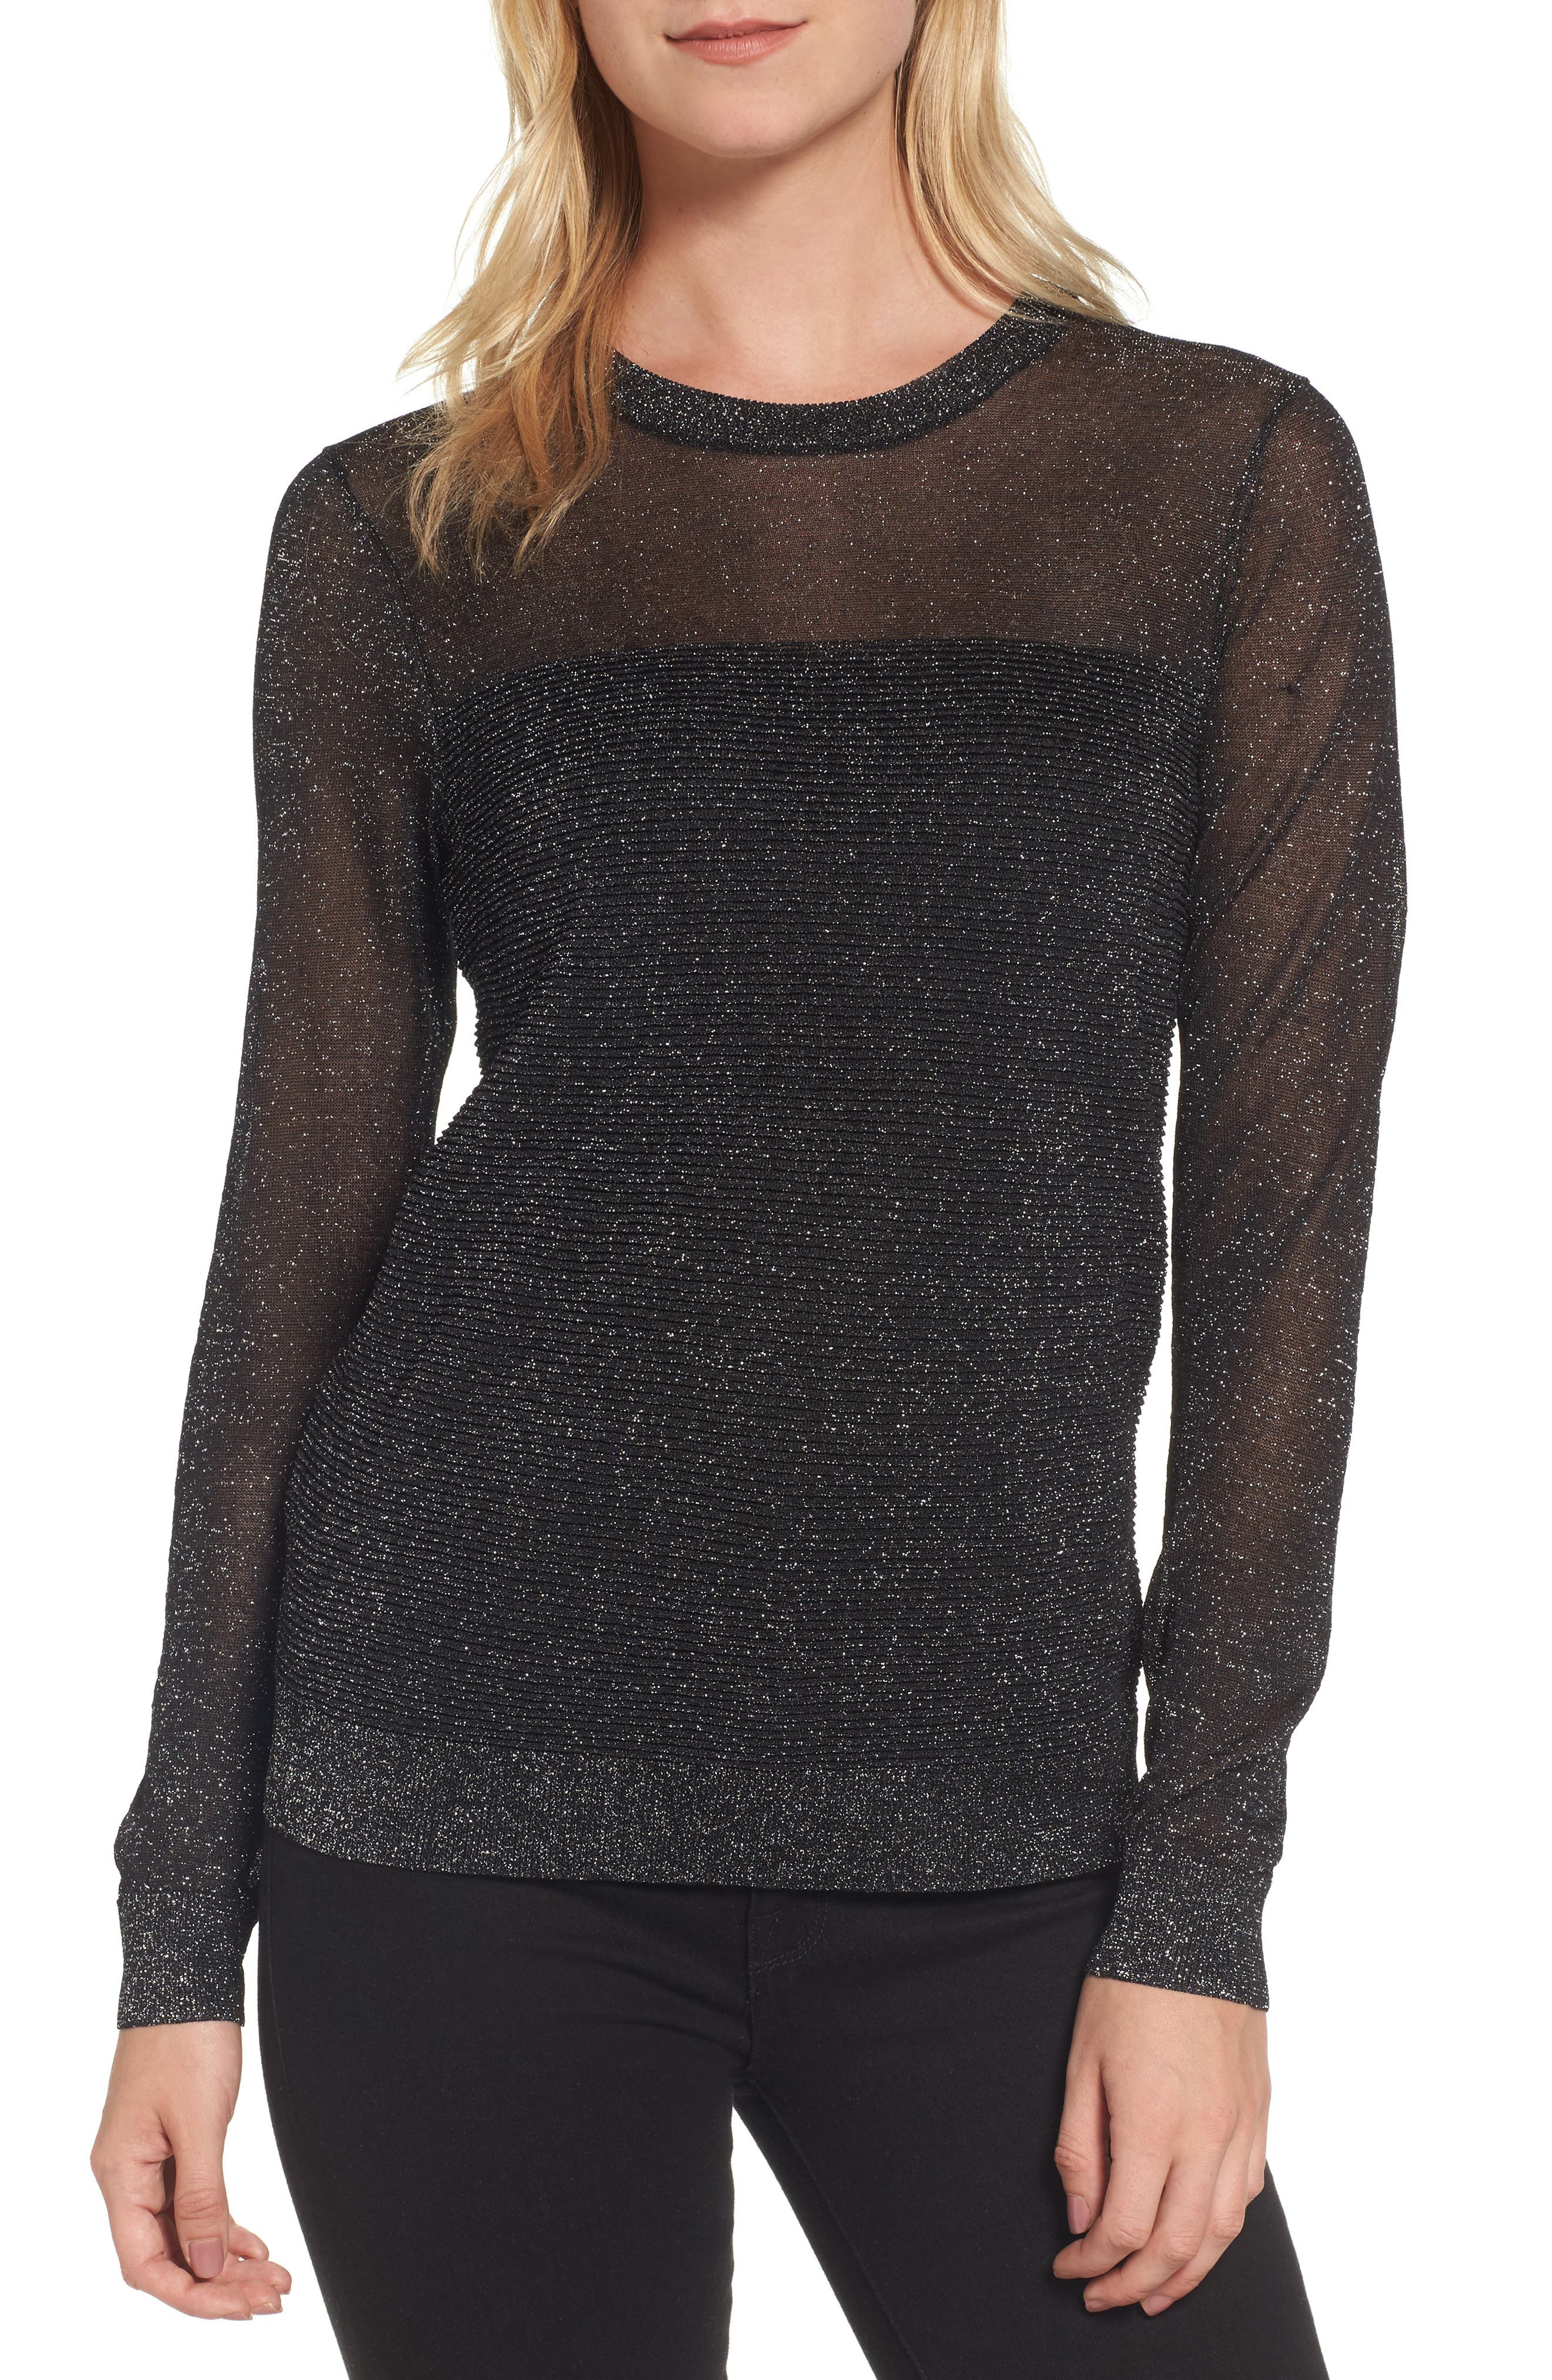 Main Image - MICHAEL Michael Kors Sheer Metallic Overlay Sweater